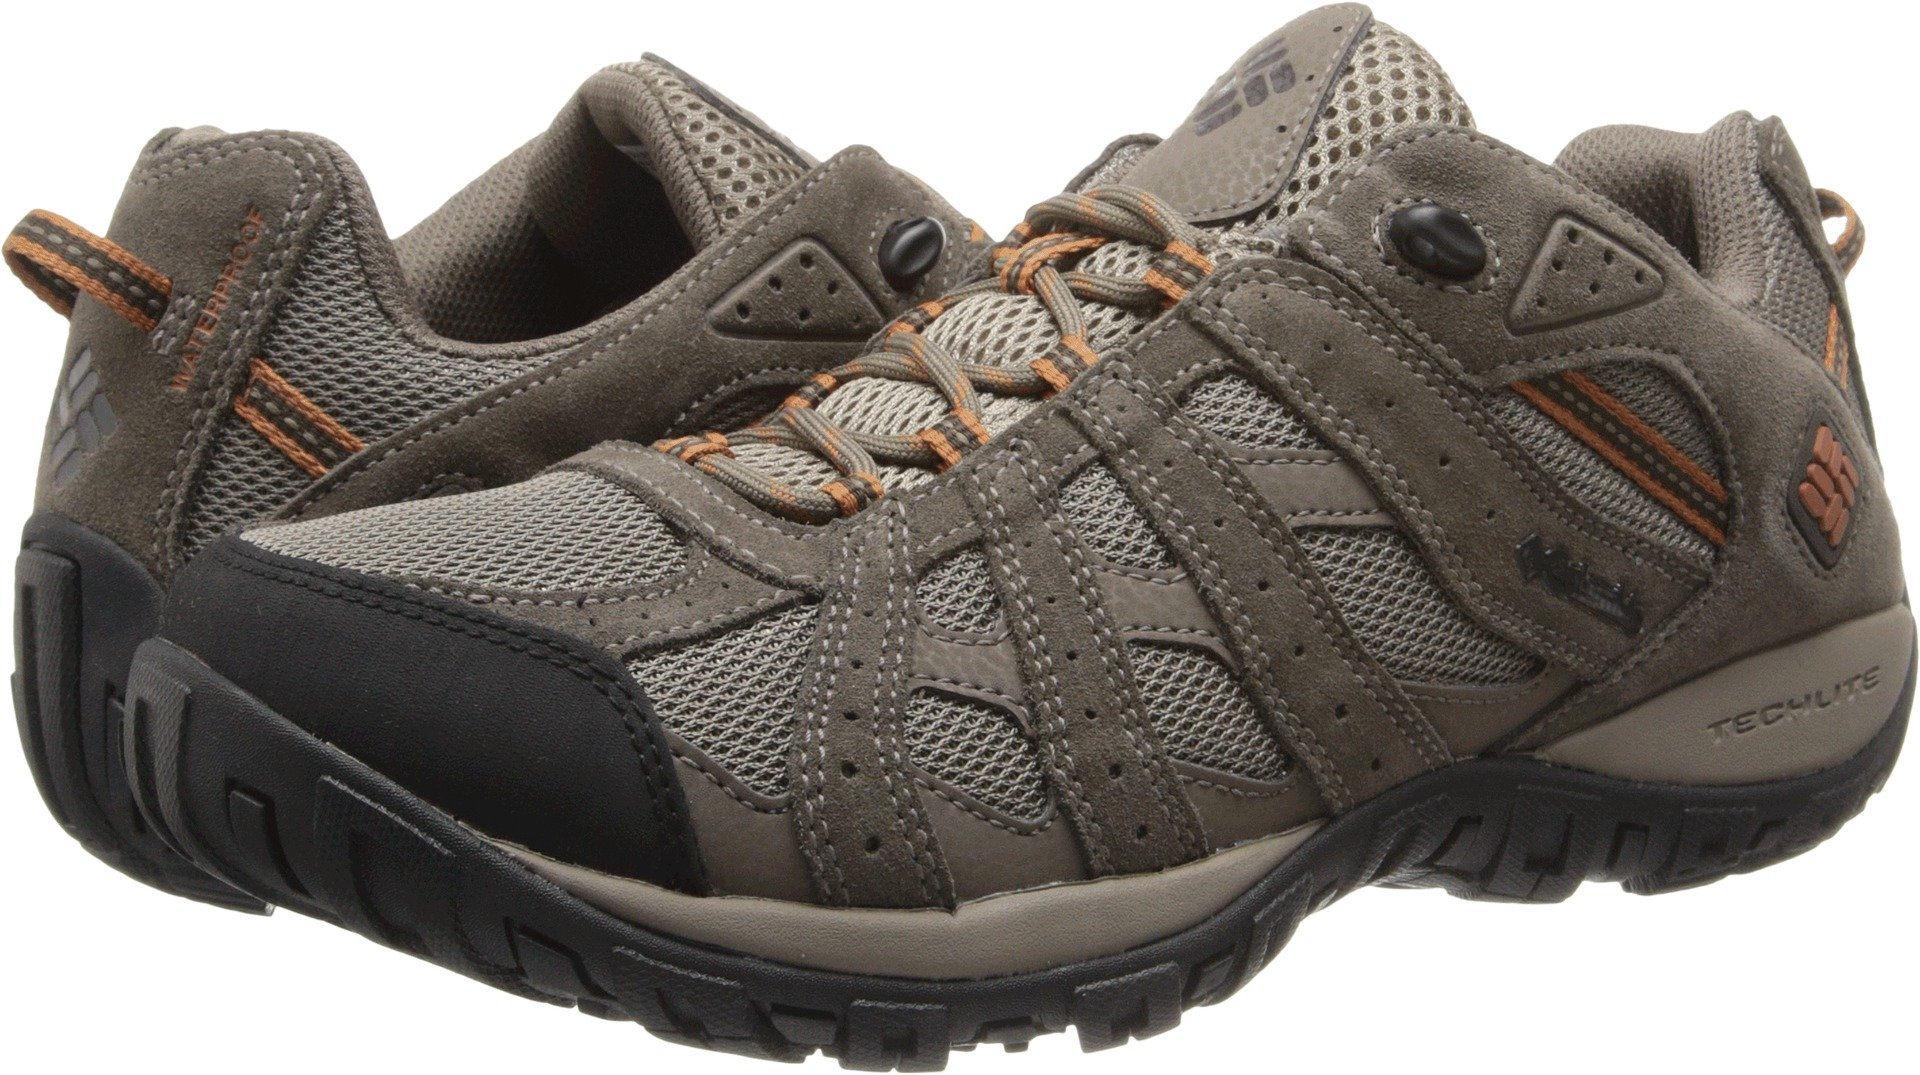 Columbia Men's Redmond¿ Waterproof Pebble/Dark Ginger 7.5 D US by Columbia (Image #1)